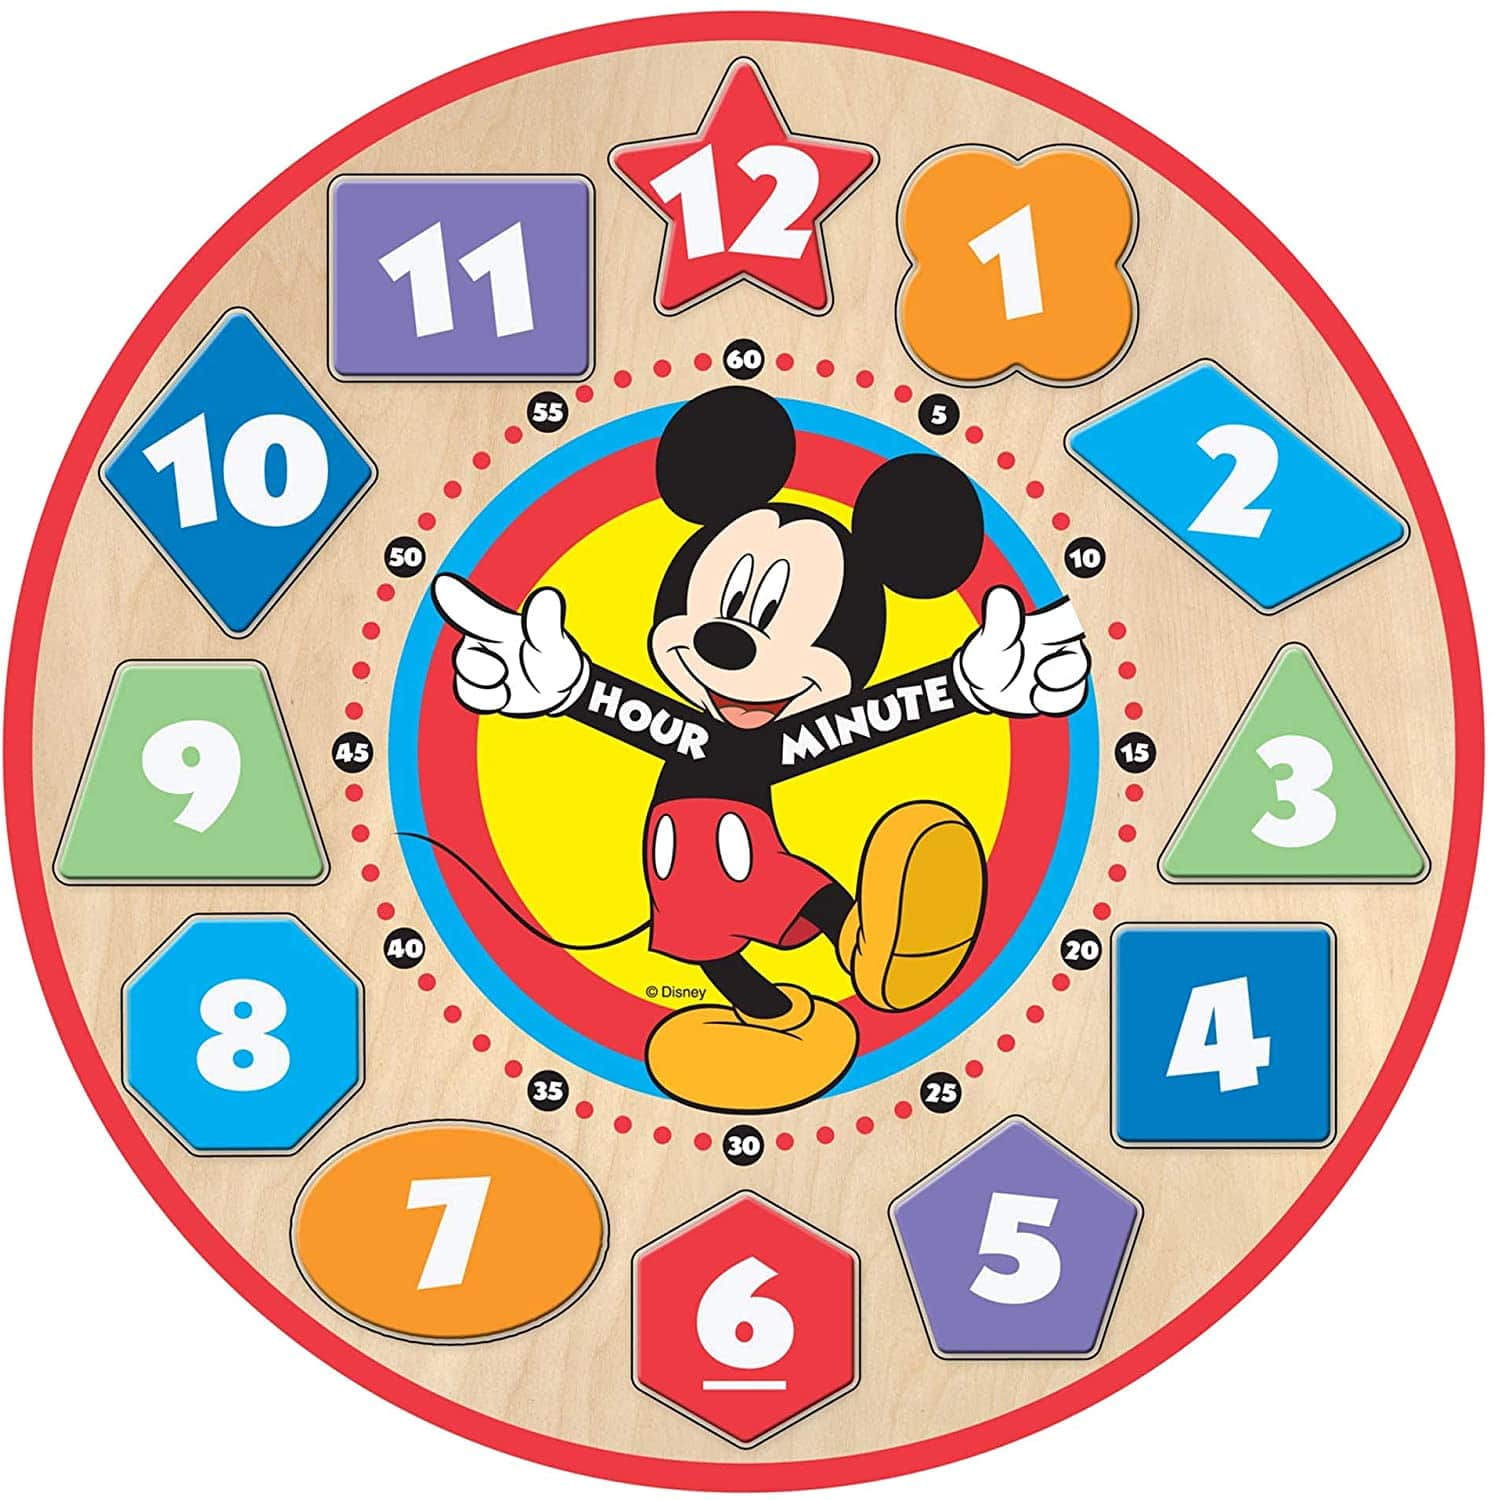 Melissa & Doug Disney Mickey Mouse Wooden Shape Toy Sorting Clock $7 + Free S&H w/ Prime or $25+